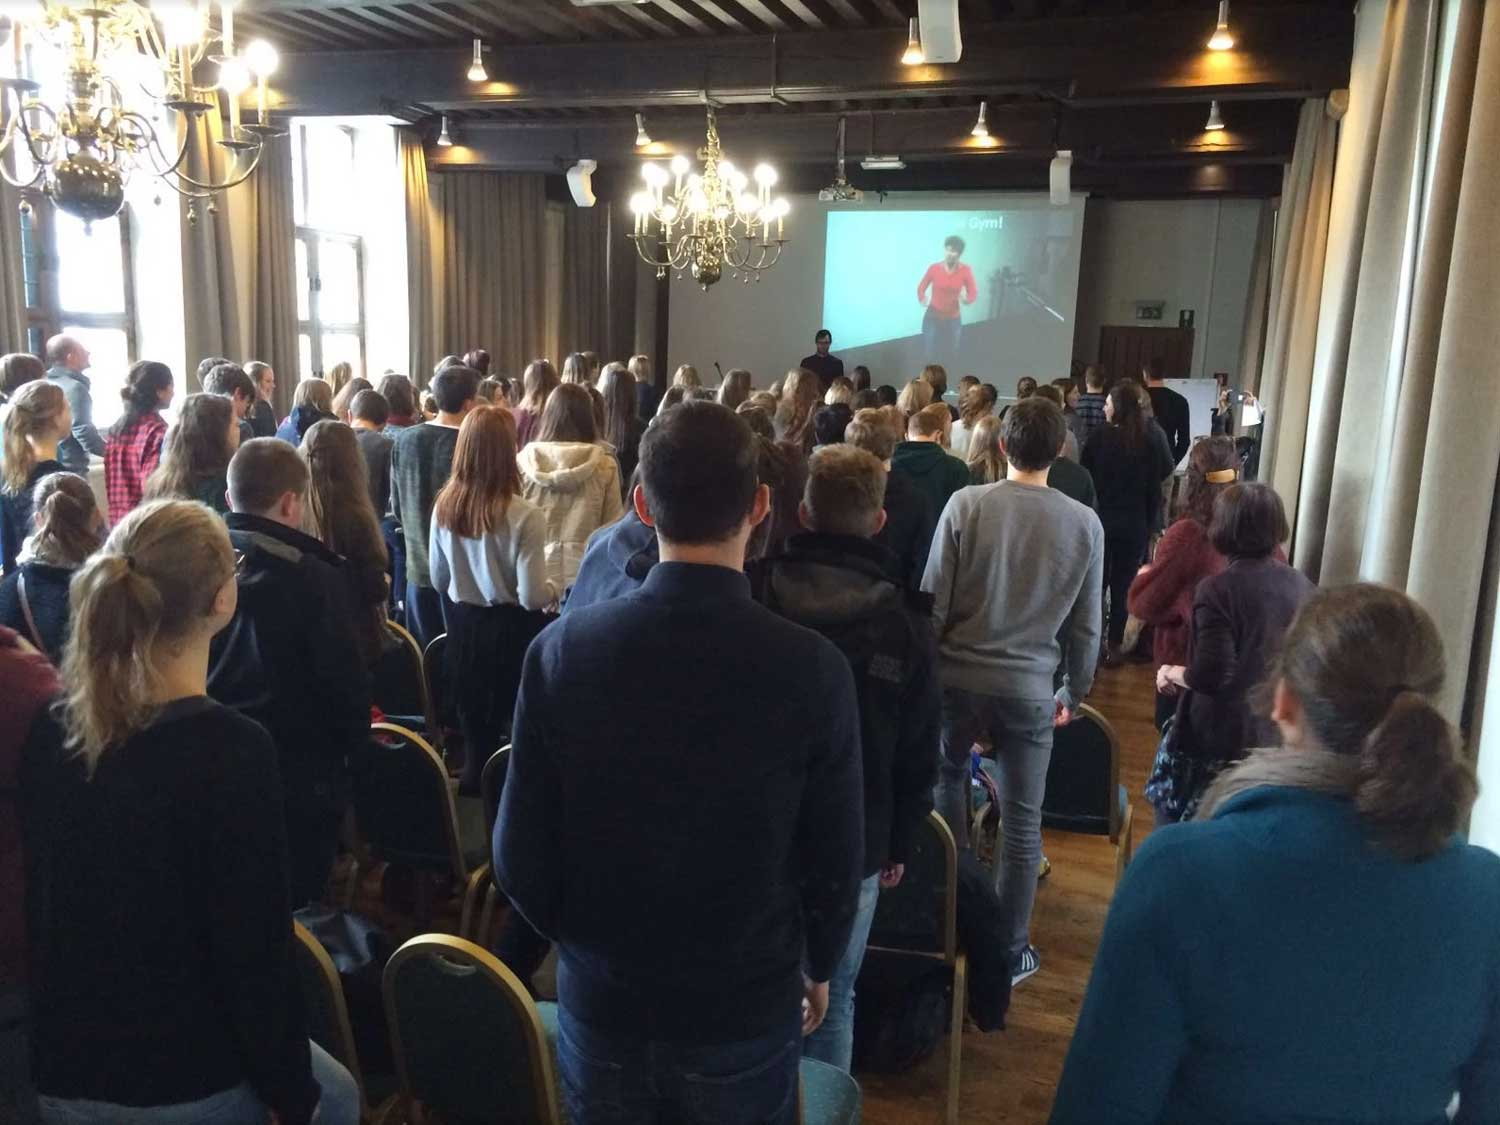 Meeting of Minds for Youth festival over hersenen